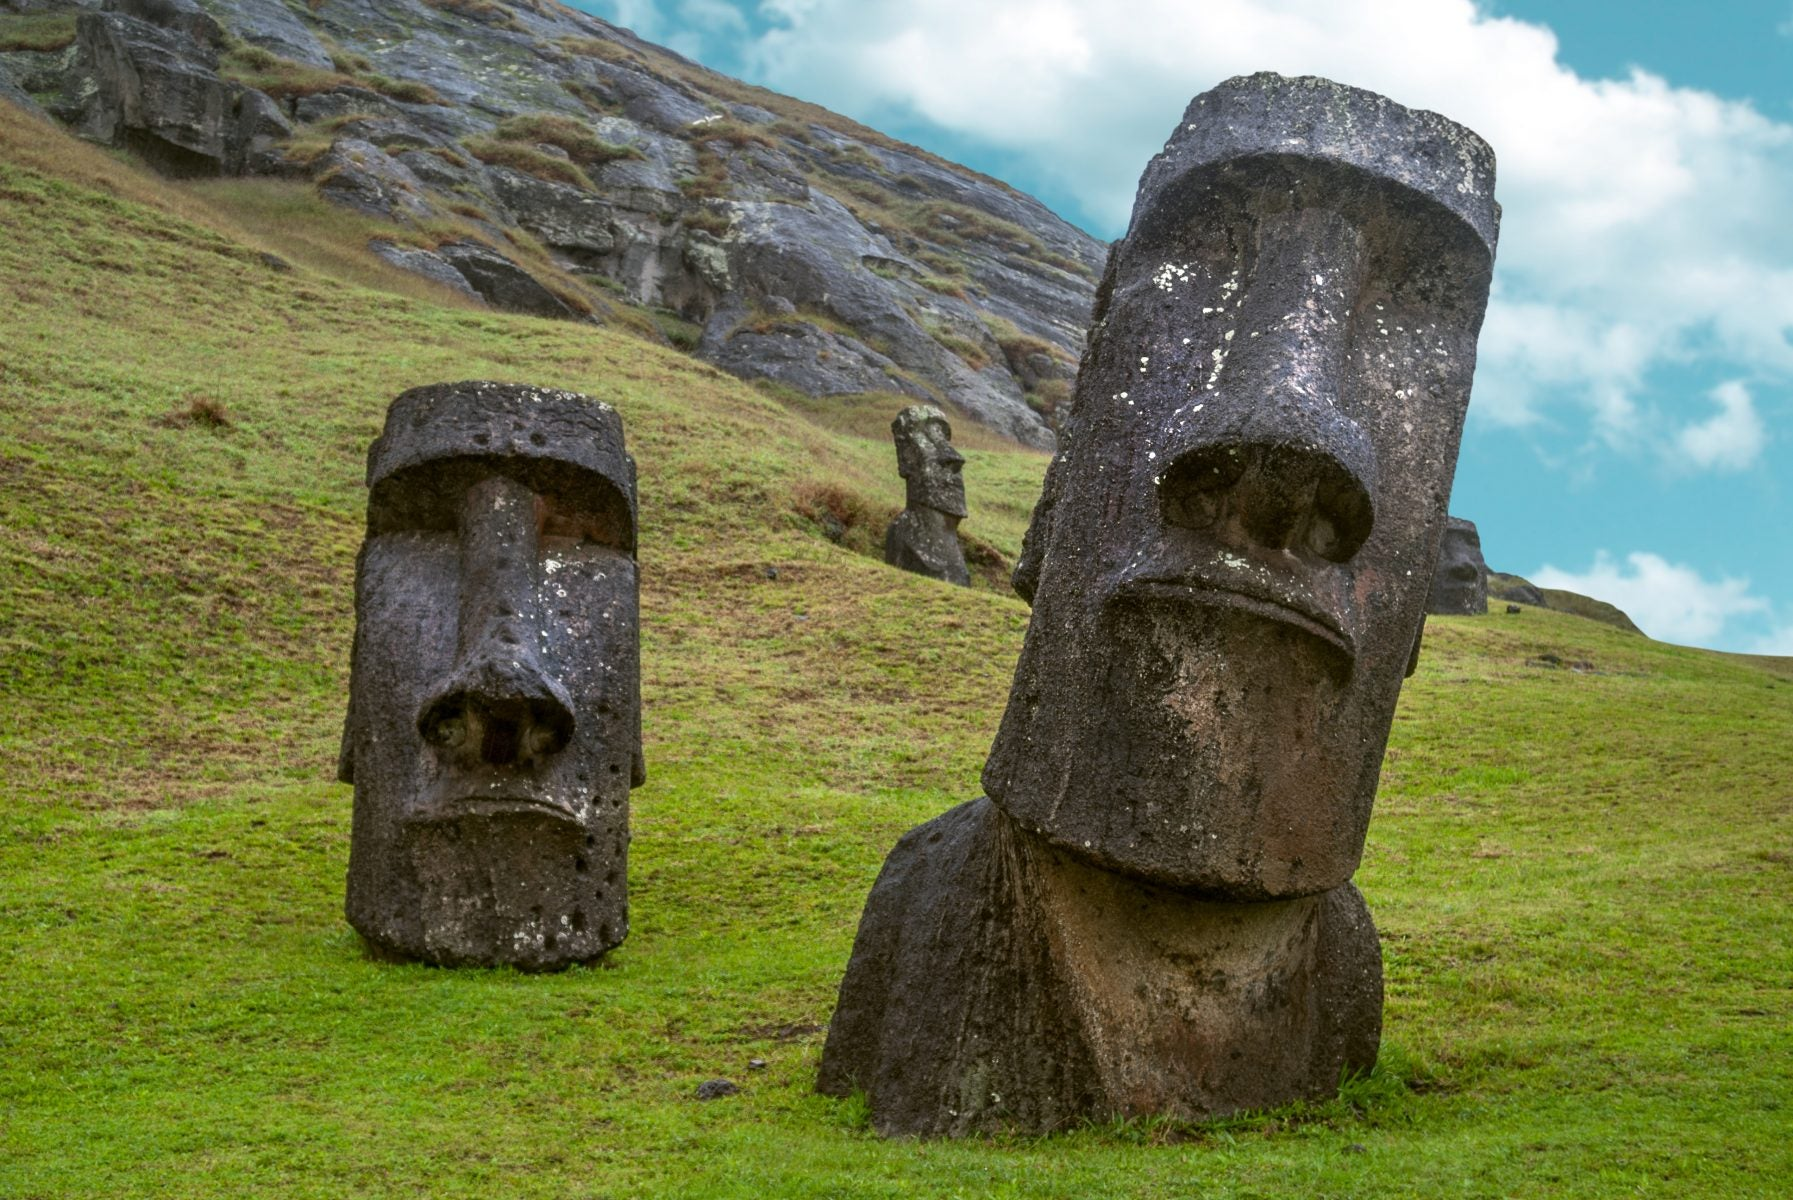 Moai statues standing on Easter Island